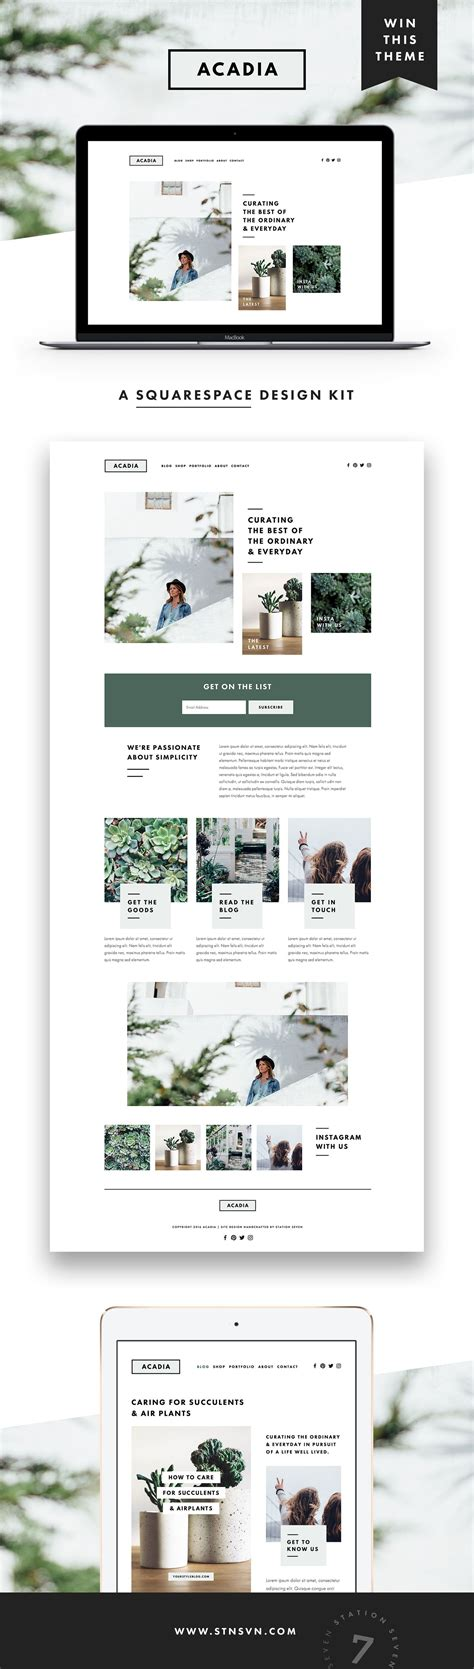 blog layout on squarespace acadia squarespace kit site design